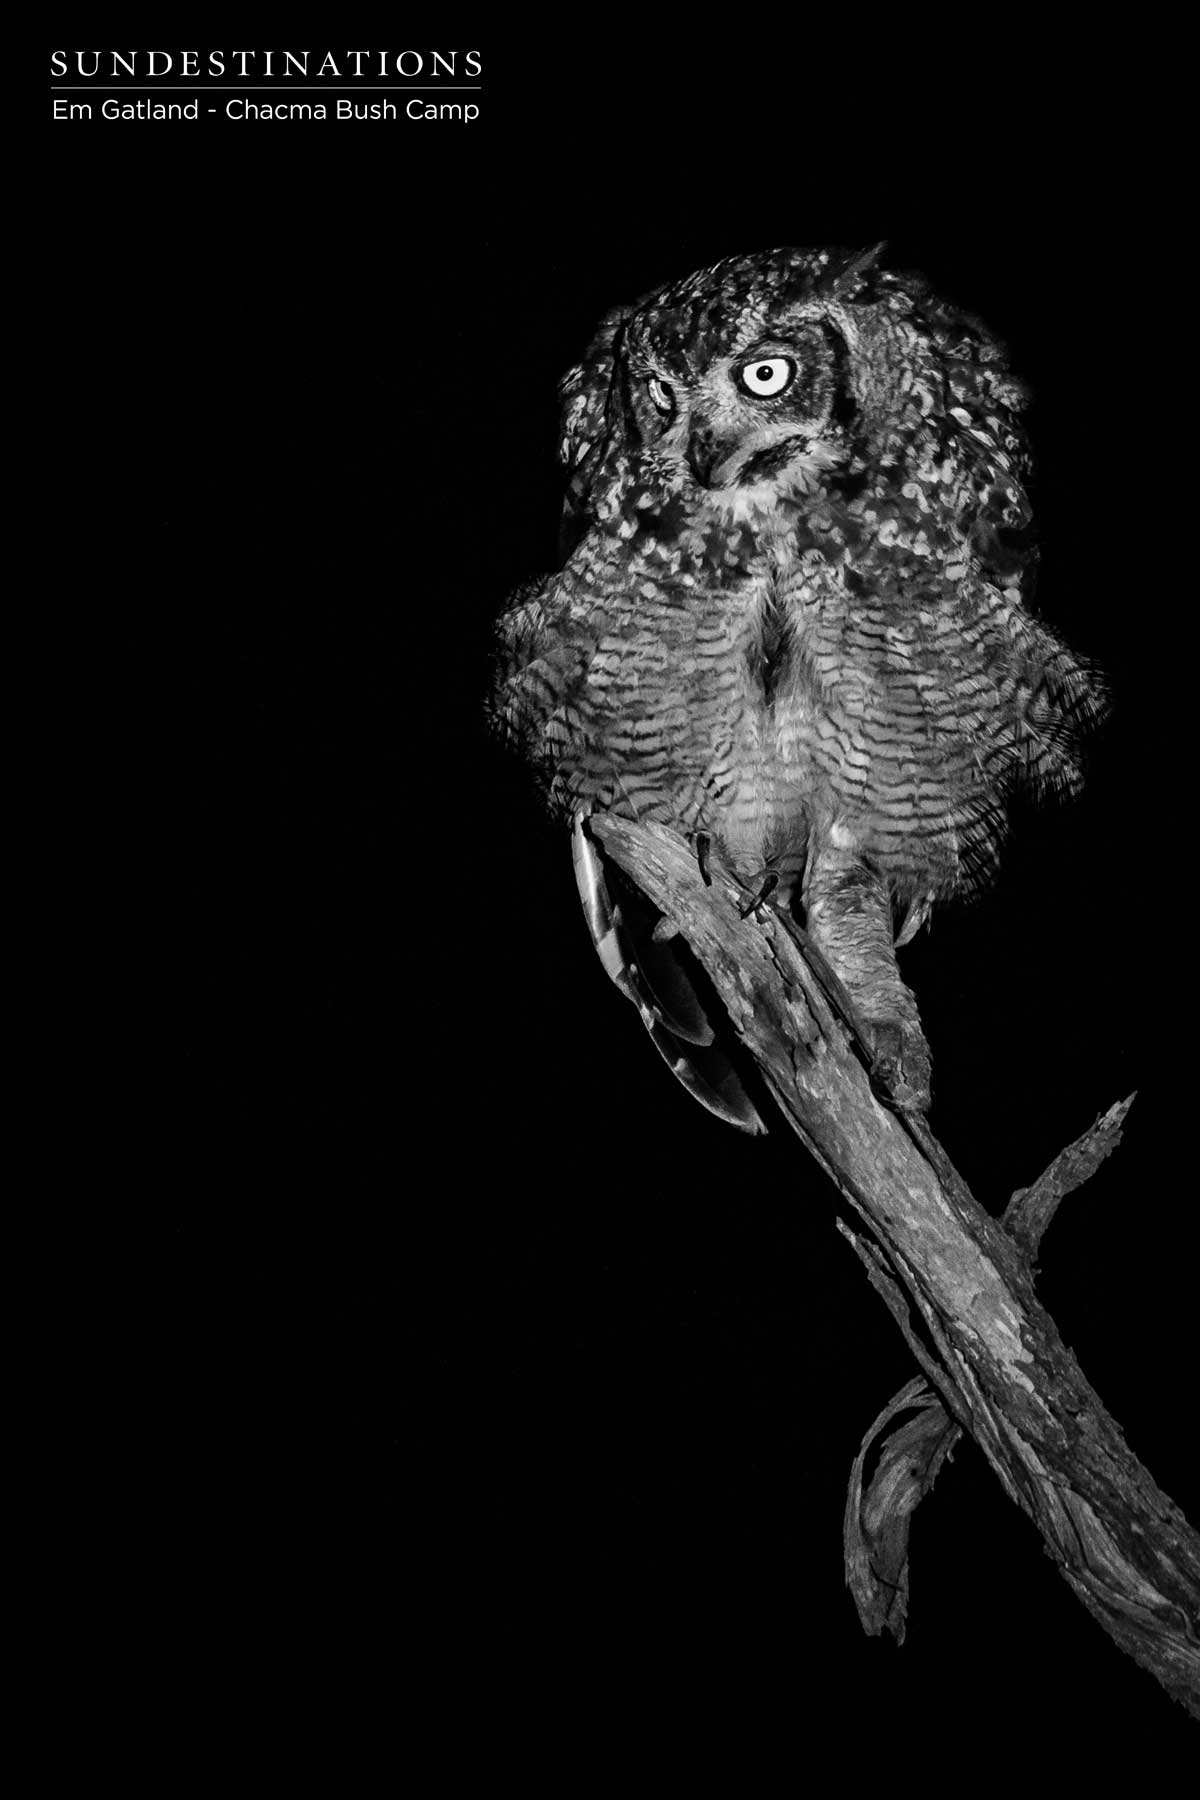 Owls at Chacma Bush Camp